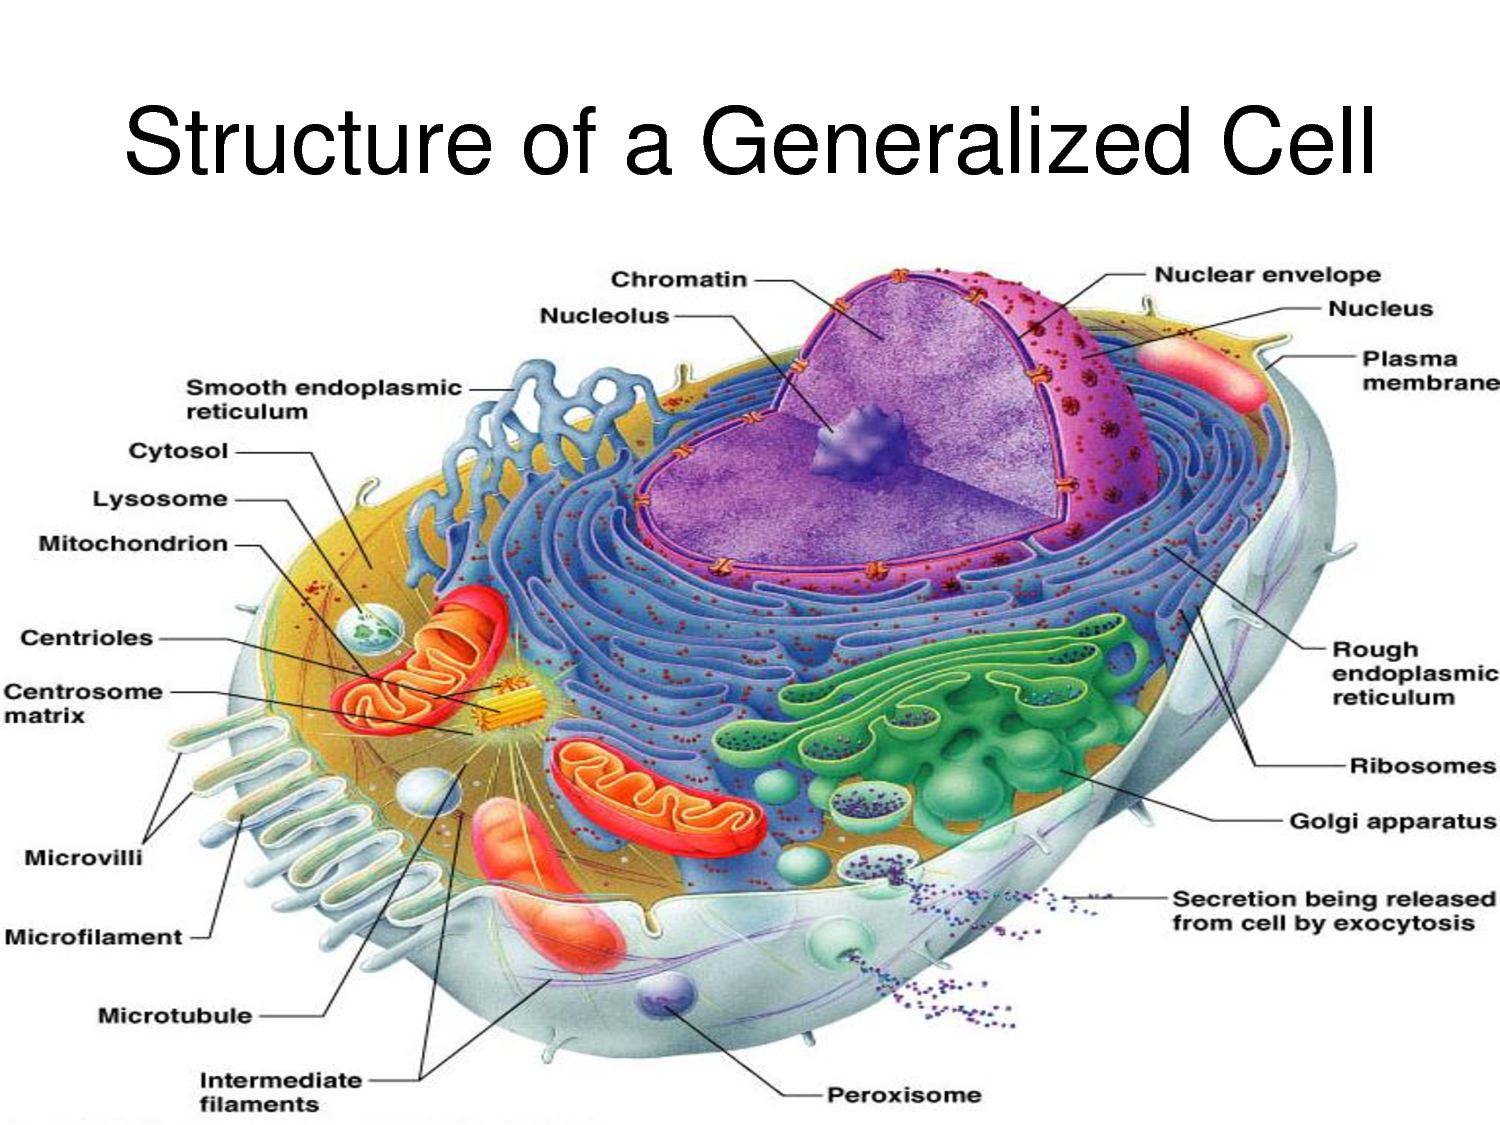 medium resolution of vacuole model bing images biology cell structure science biology cell diagram animal cell the cell diagram